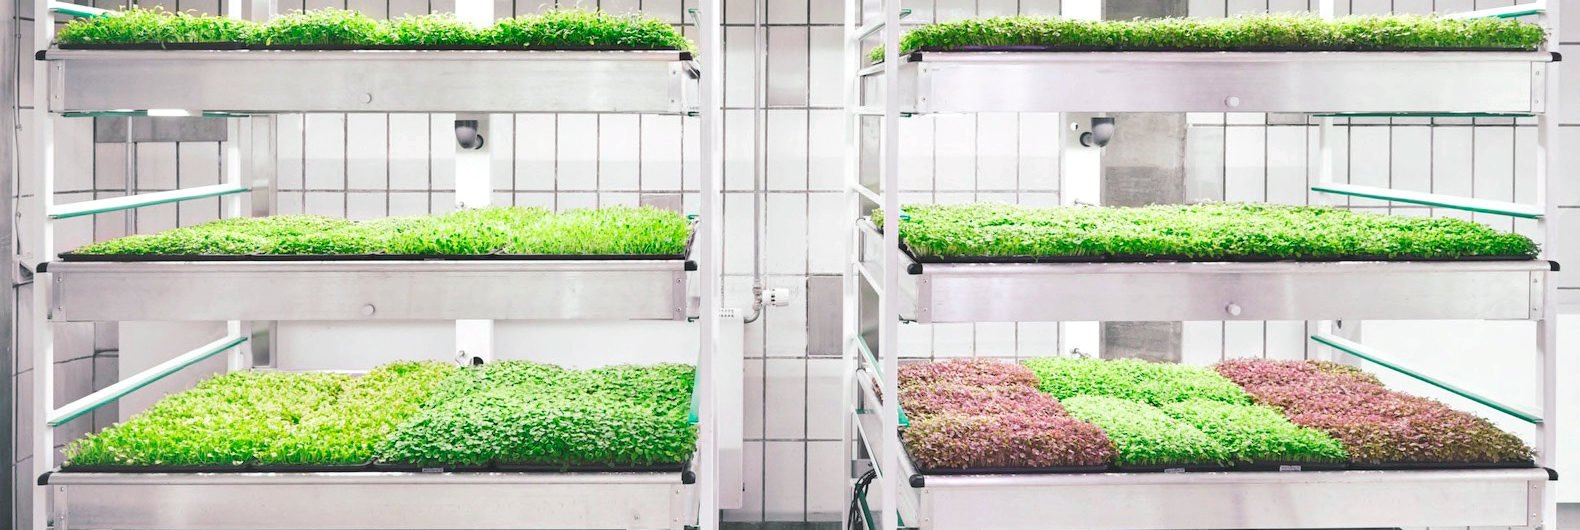 Taste The Future With Ikea 39 S Space10 Lokal Hydroponic Food - Ikea Küchenplaner Lokal